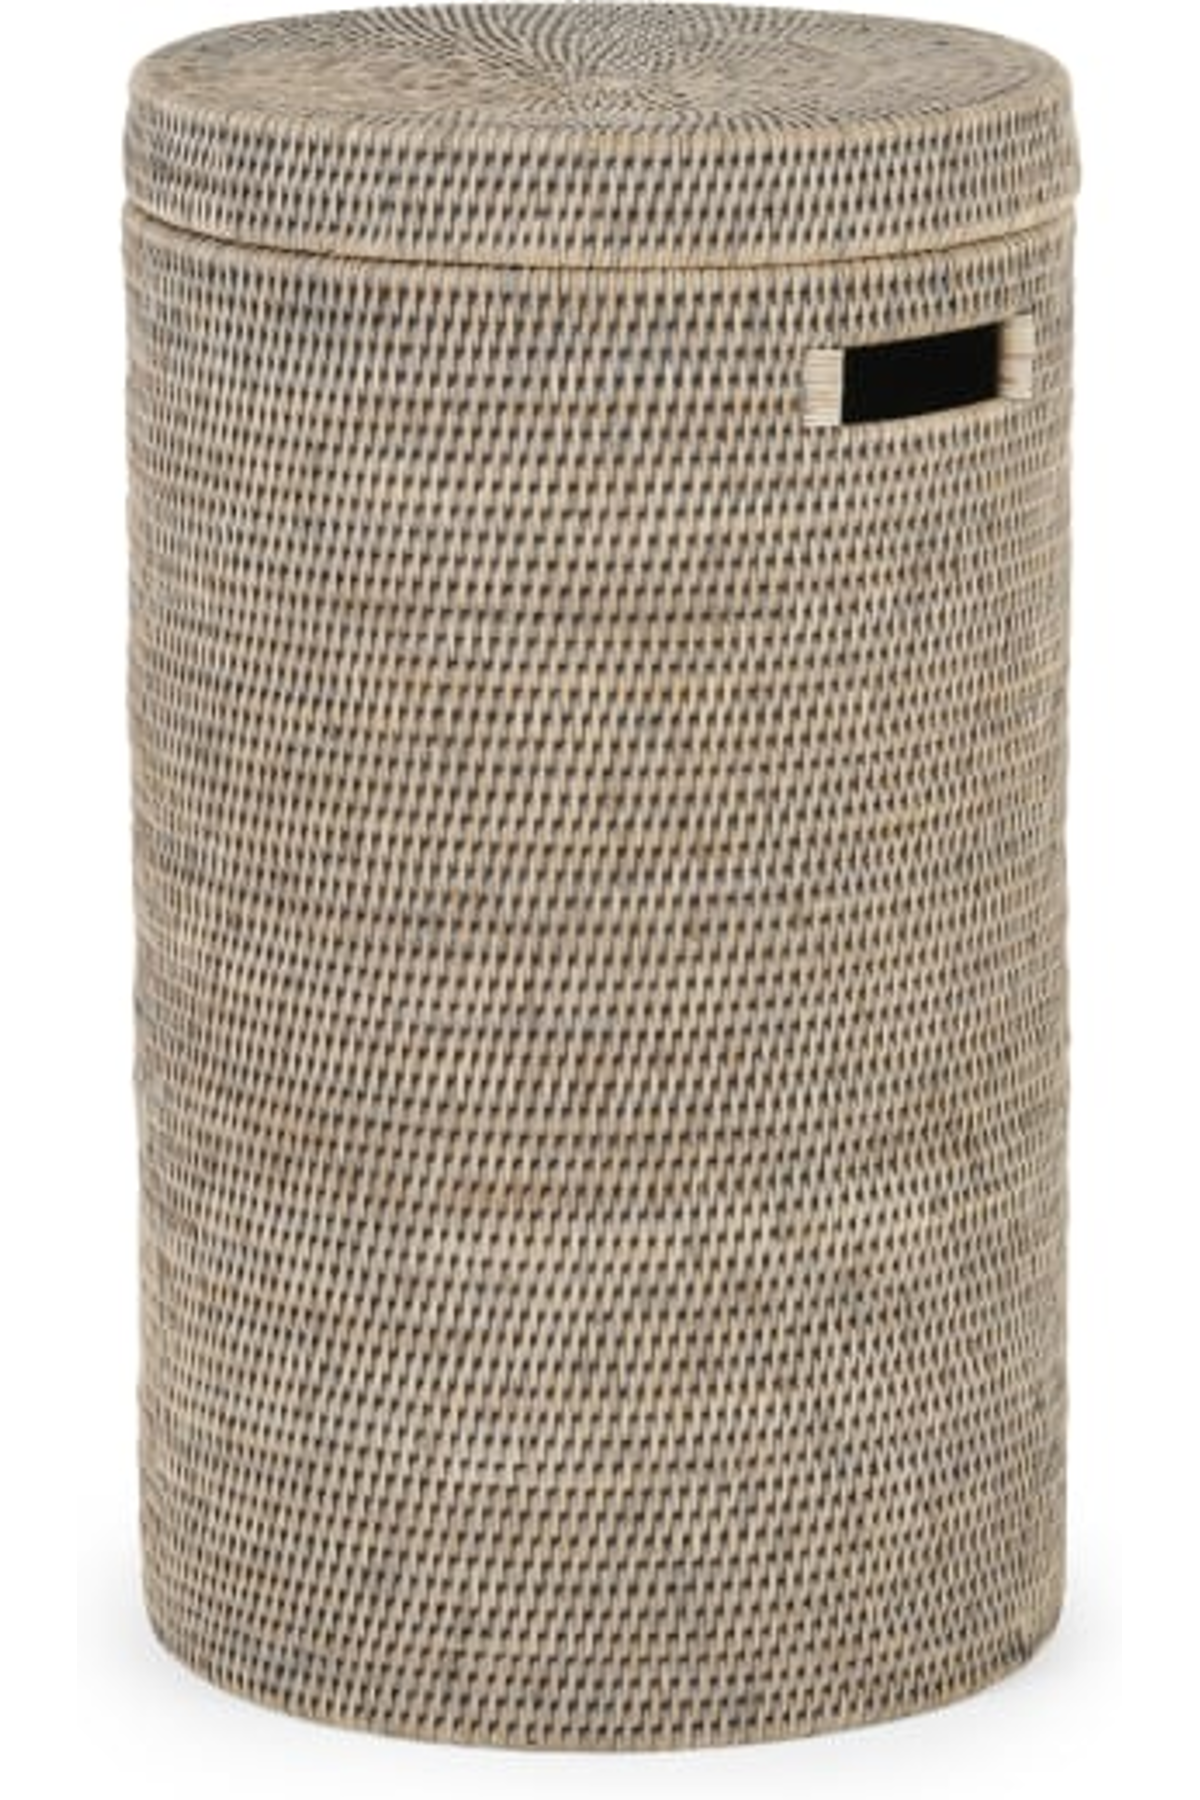 Hadid Hand Woven Rattan Laundry Basket Grey In 2020 Laundry